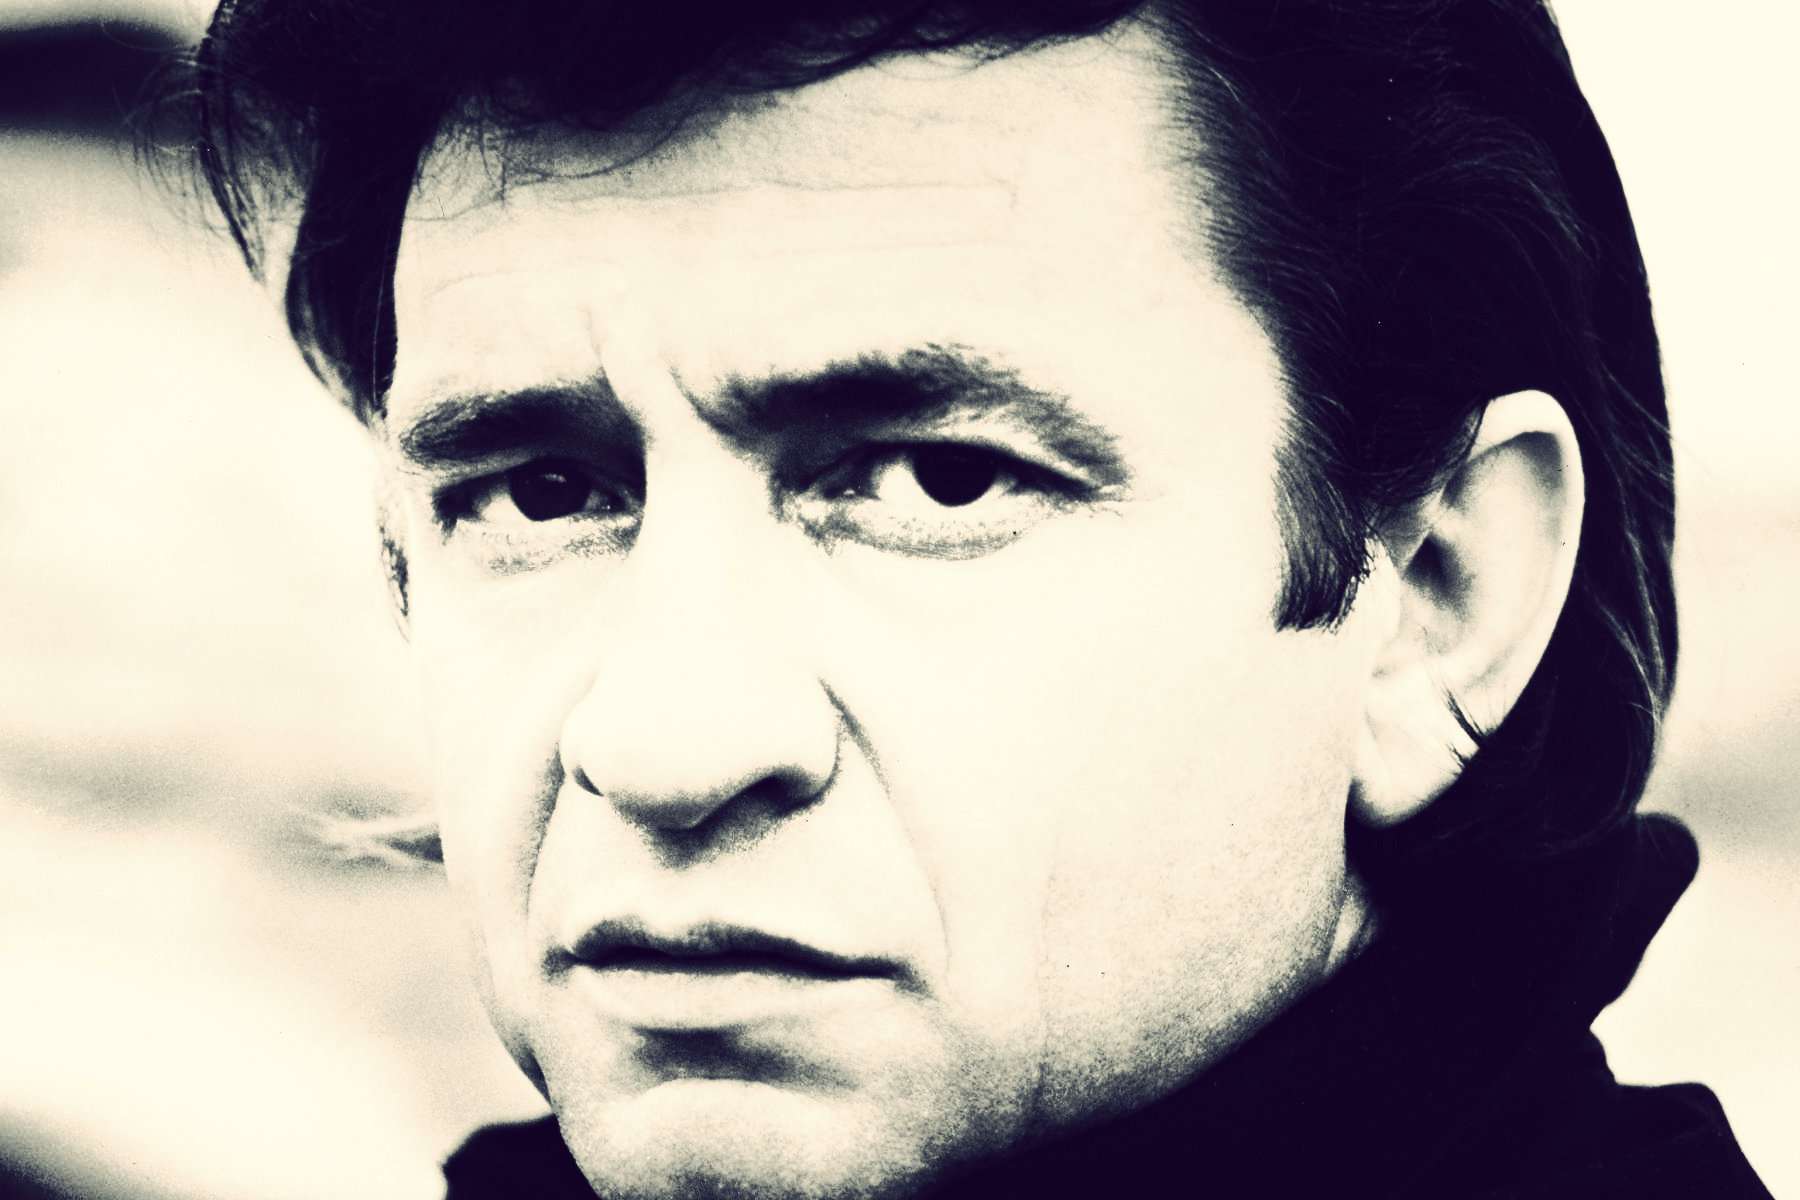 Best images about Johnny cash on Pinterest  Pantone swatches 1800x1200